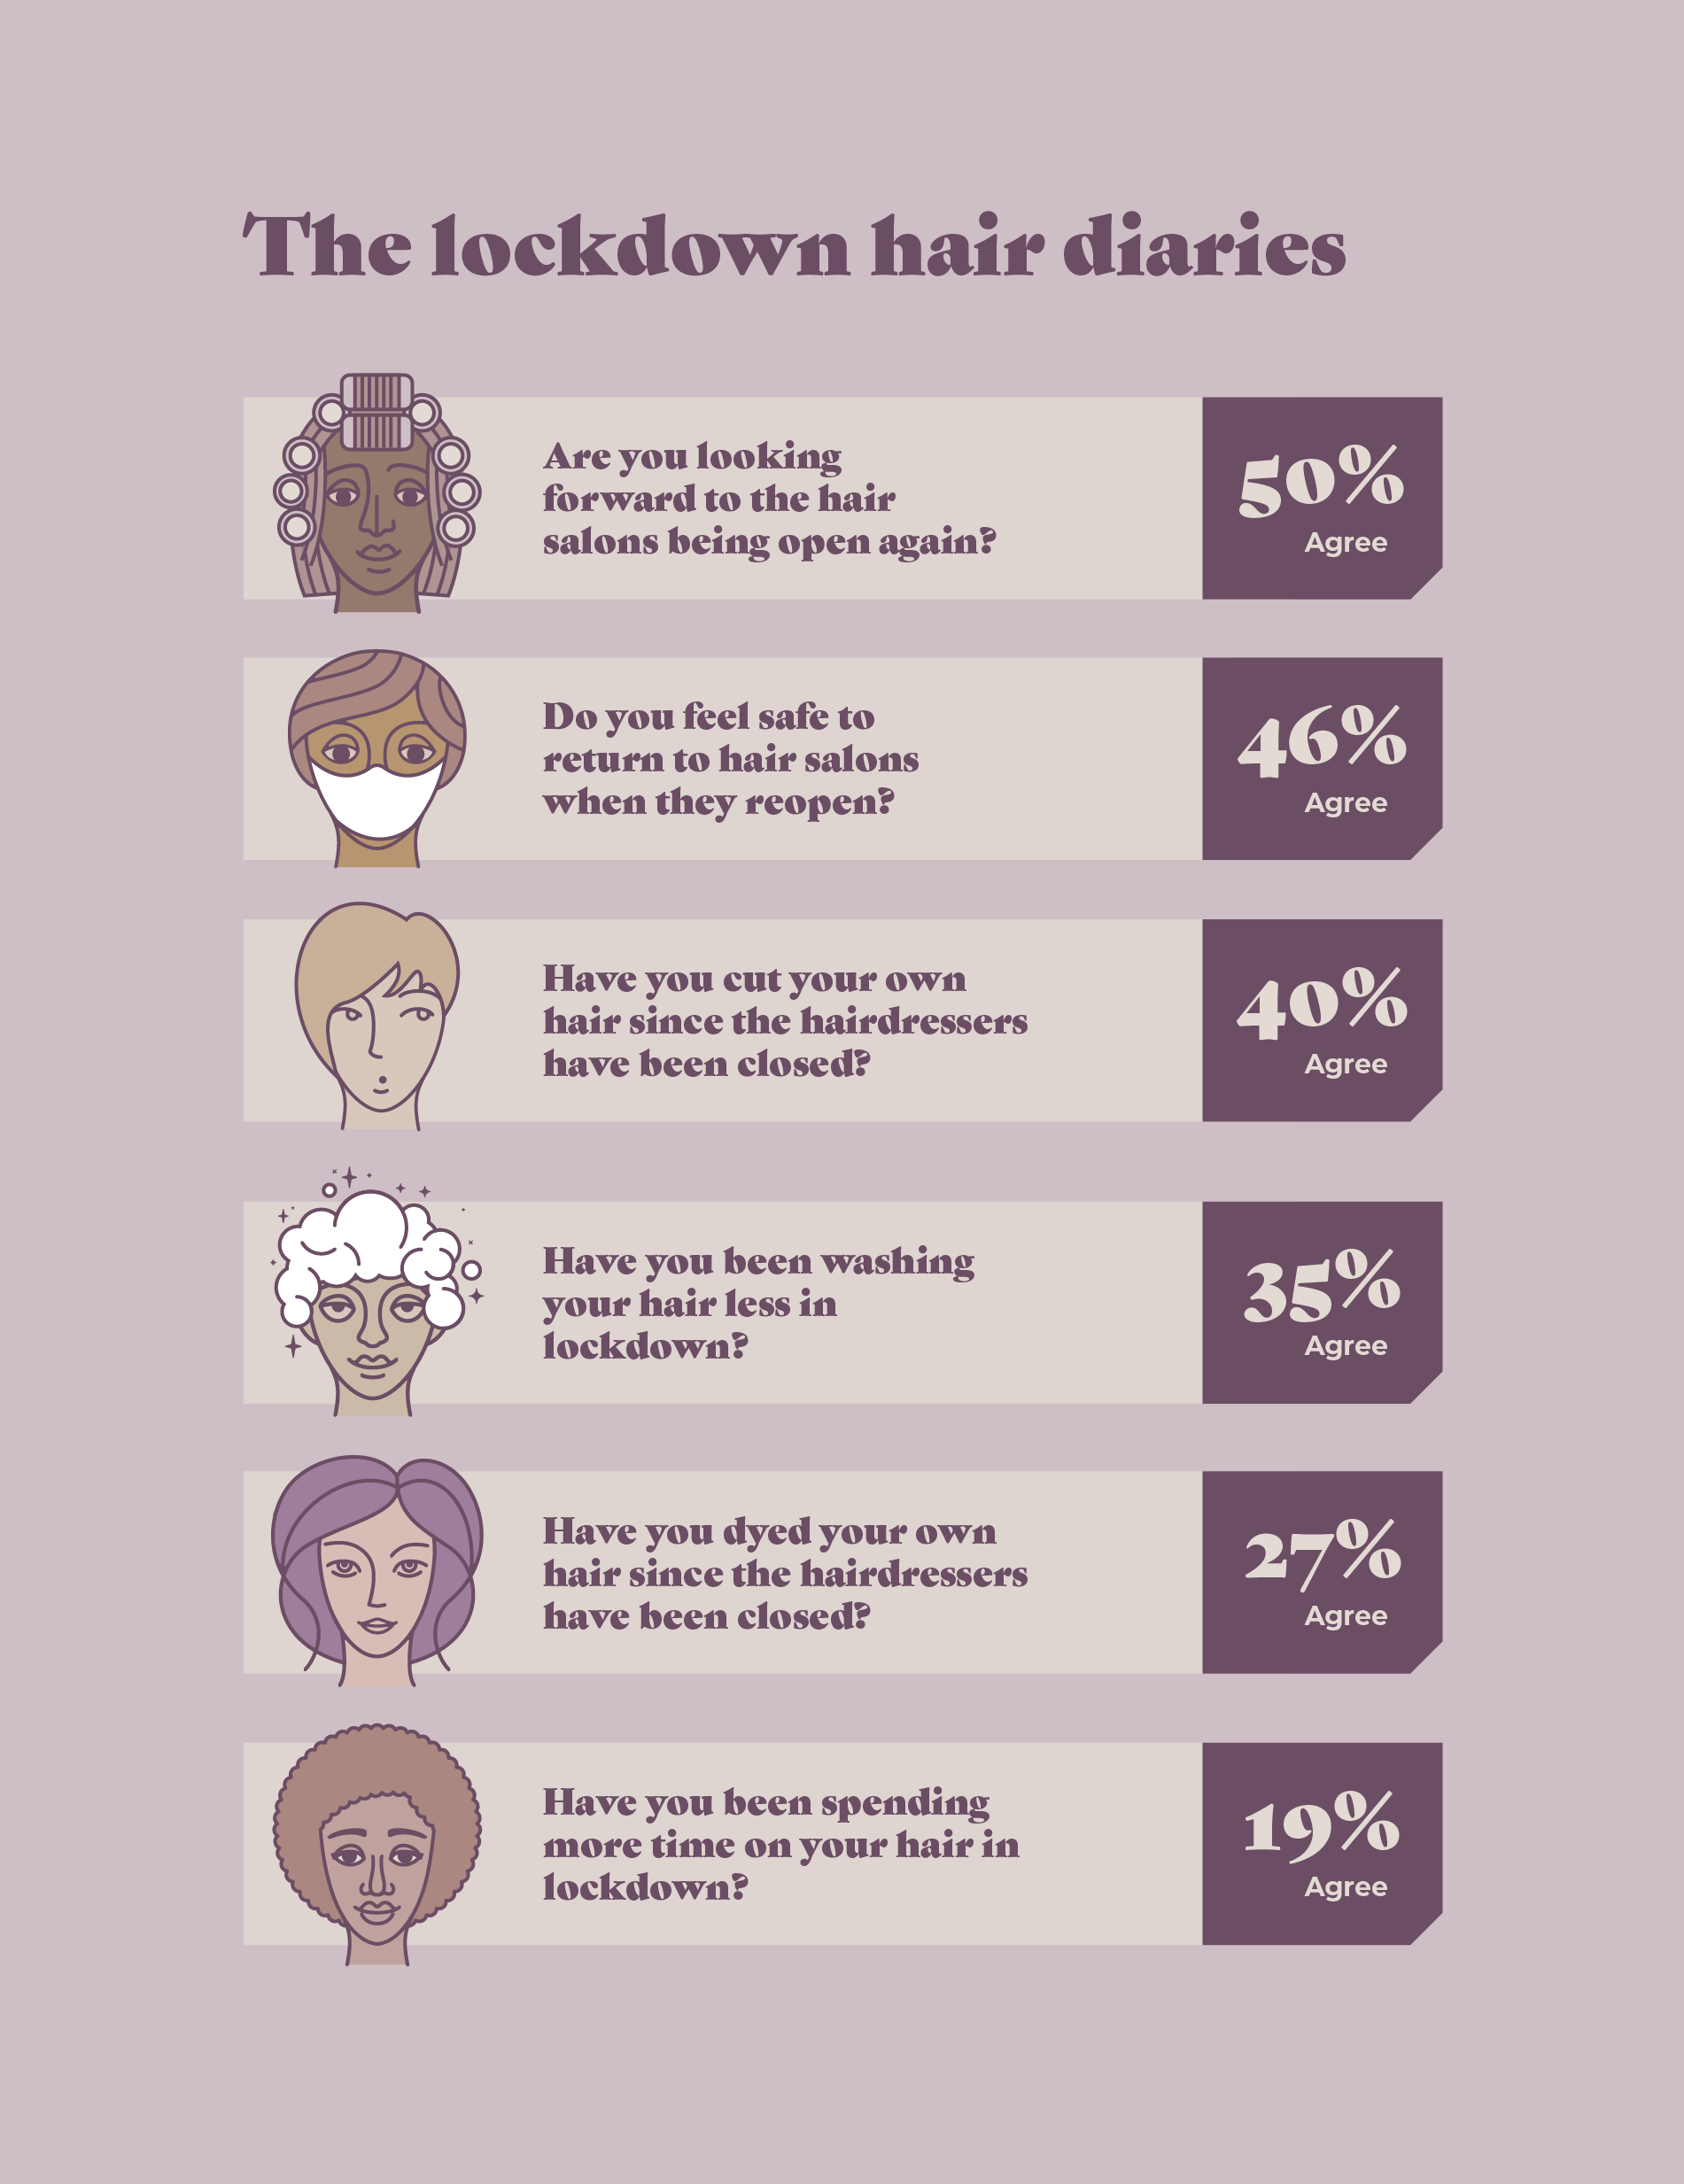 A graphic that shows how people have been treating their hair during lockdown